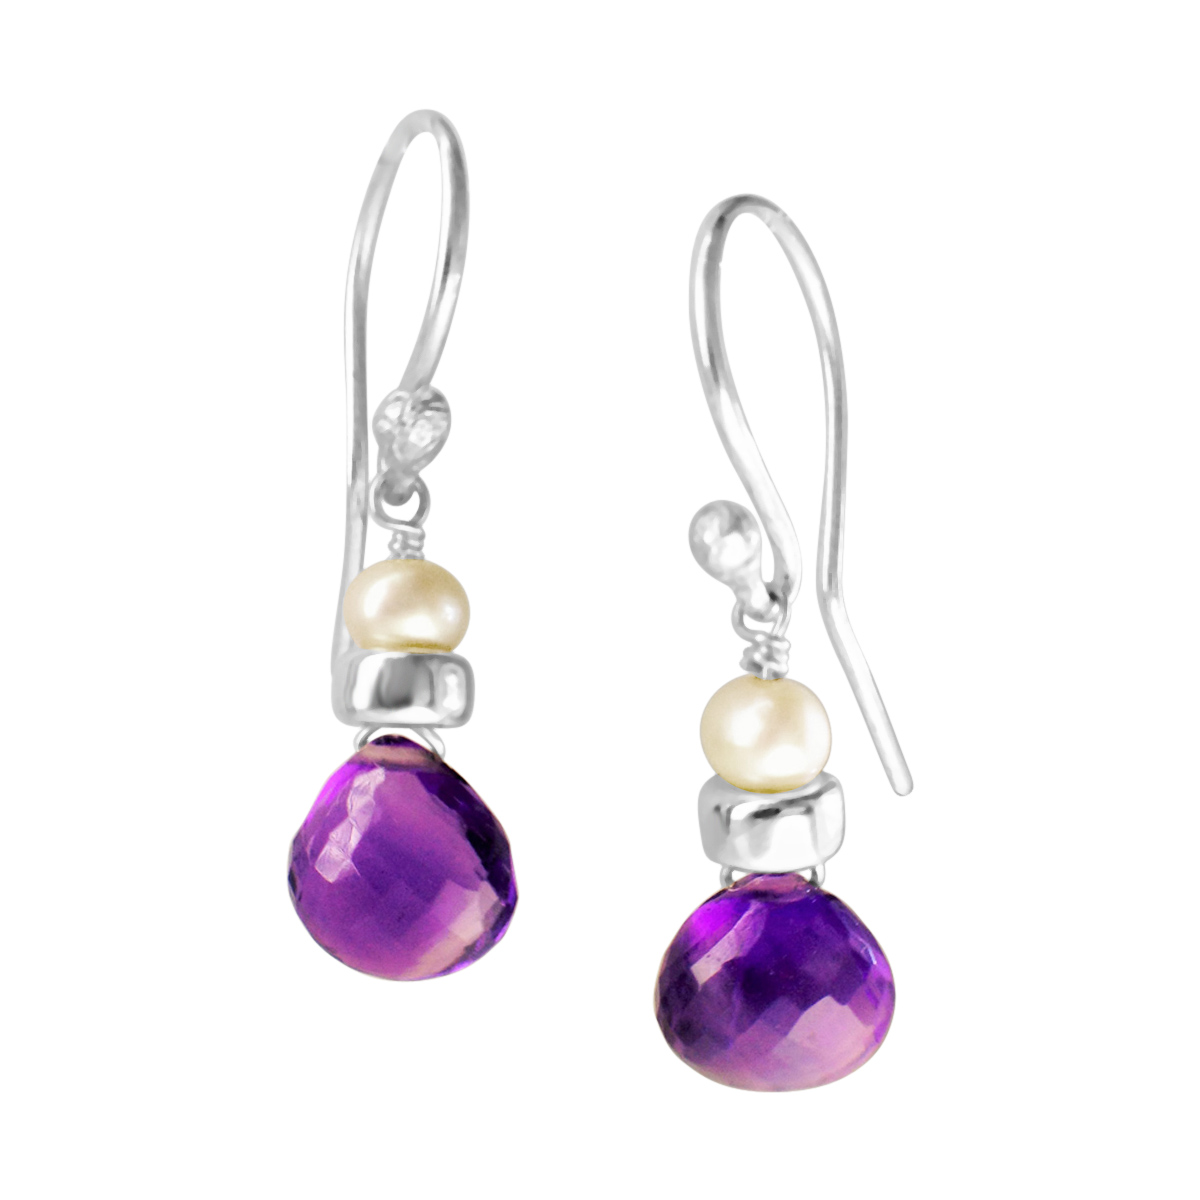 Perfume Bottle amethyst earrings